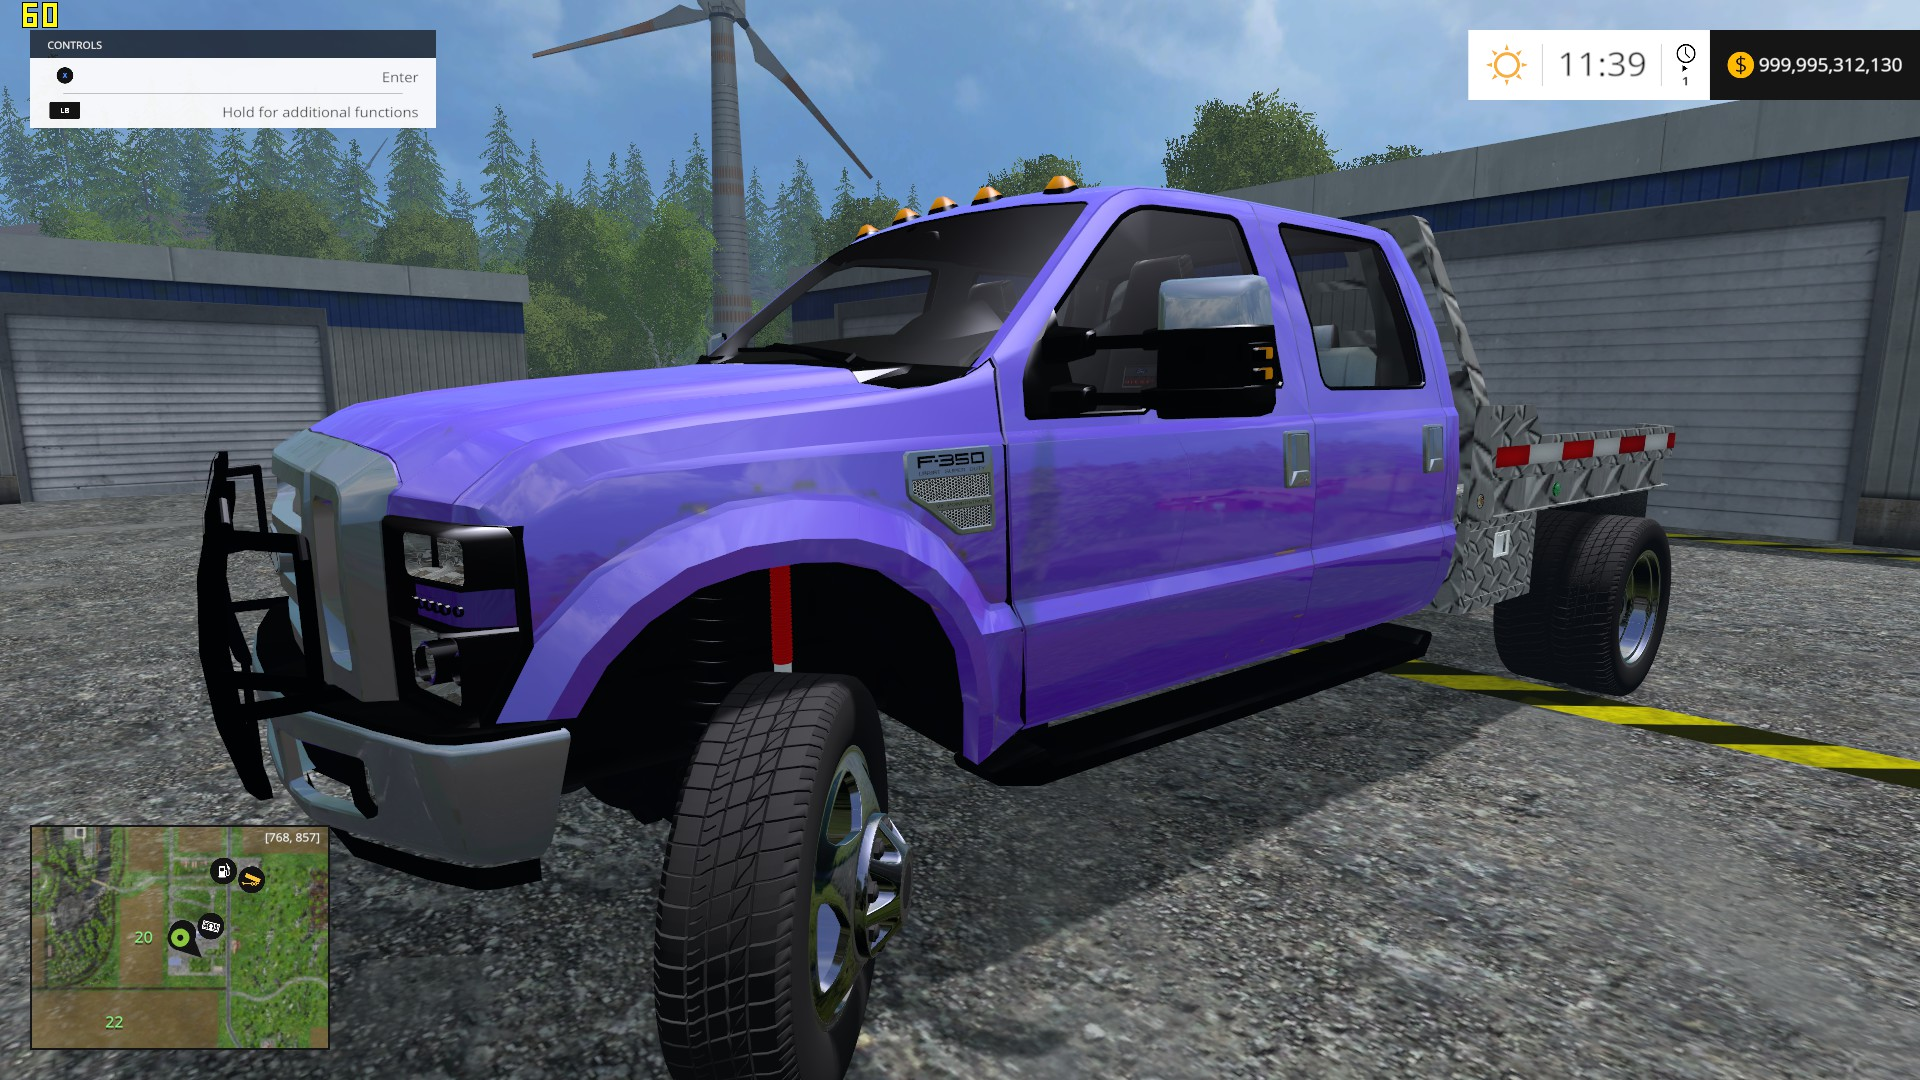 utility diesel service itm crew cab powerstroke ford truck